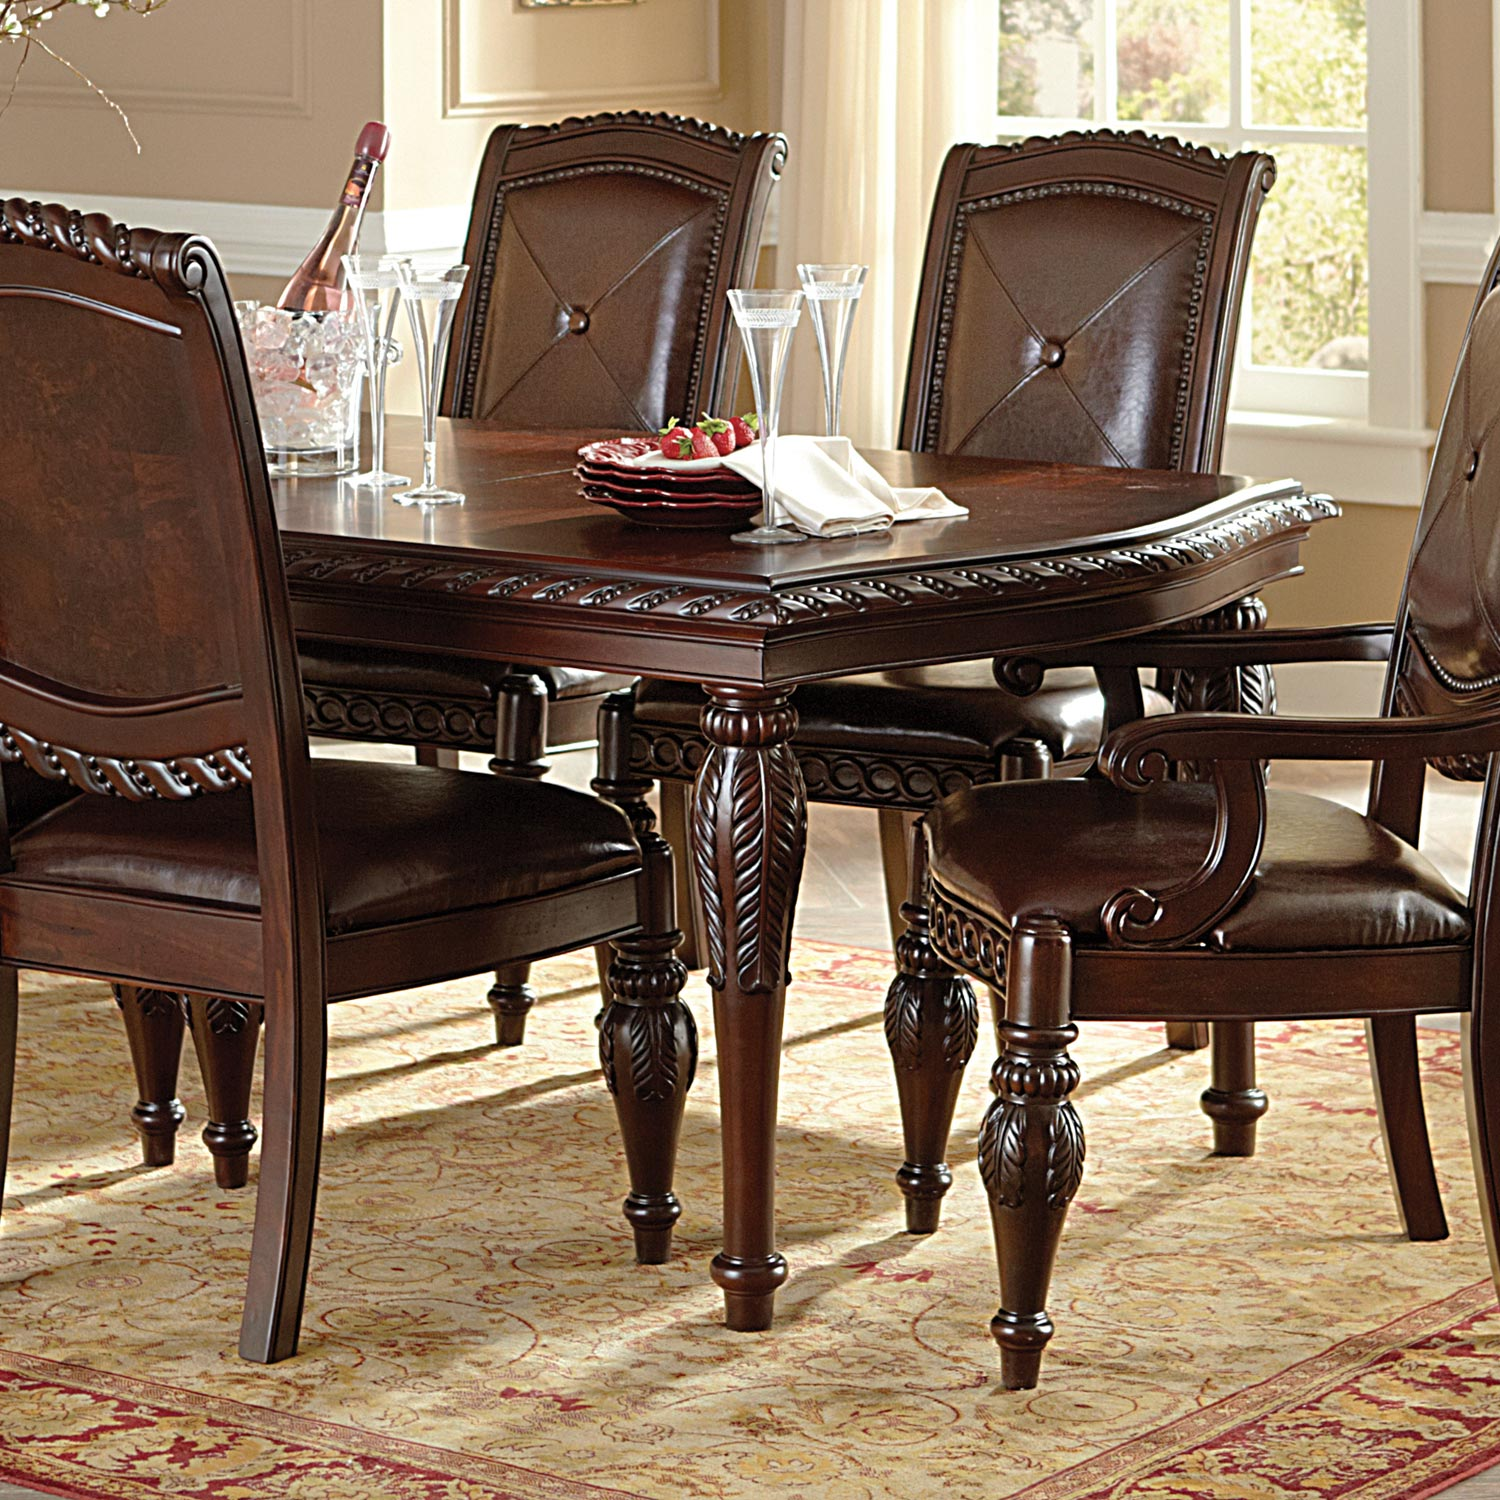 Antoinette 7 Piece Dining Set - Extending Table, Cherry Finish - SSC-AY100-7PC